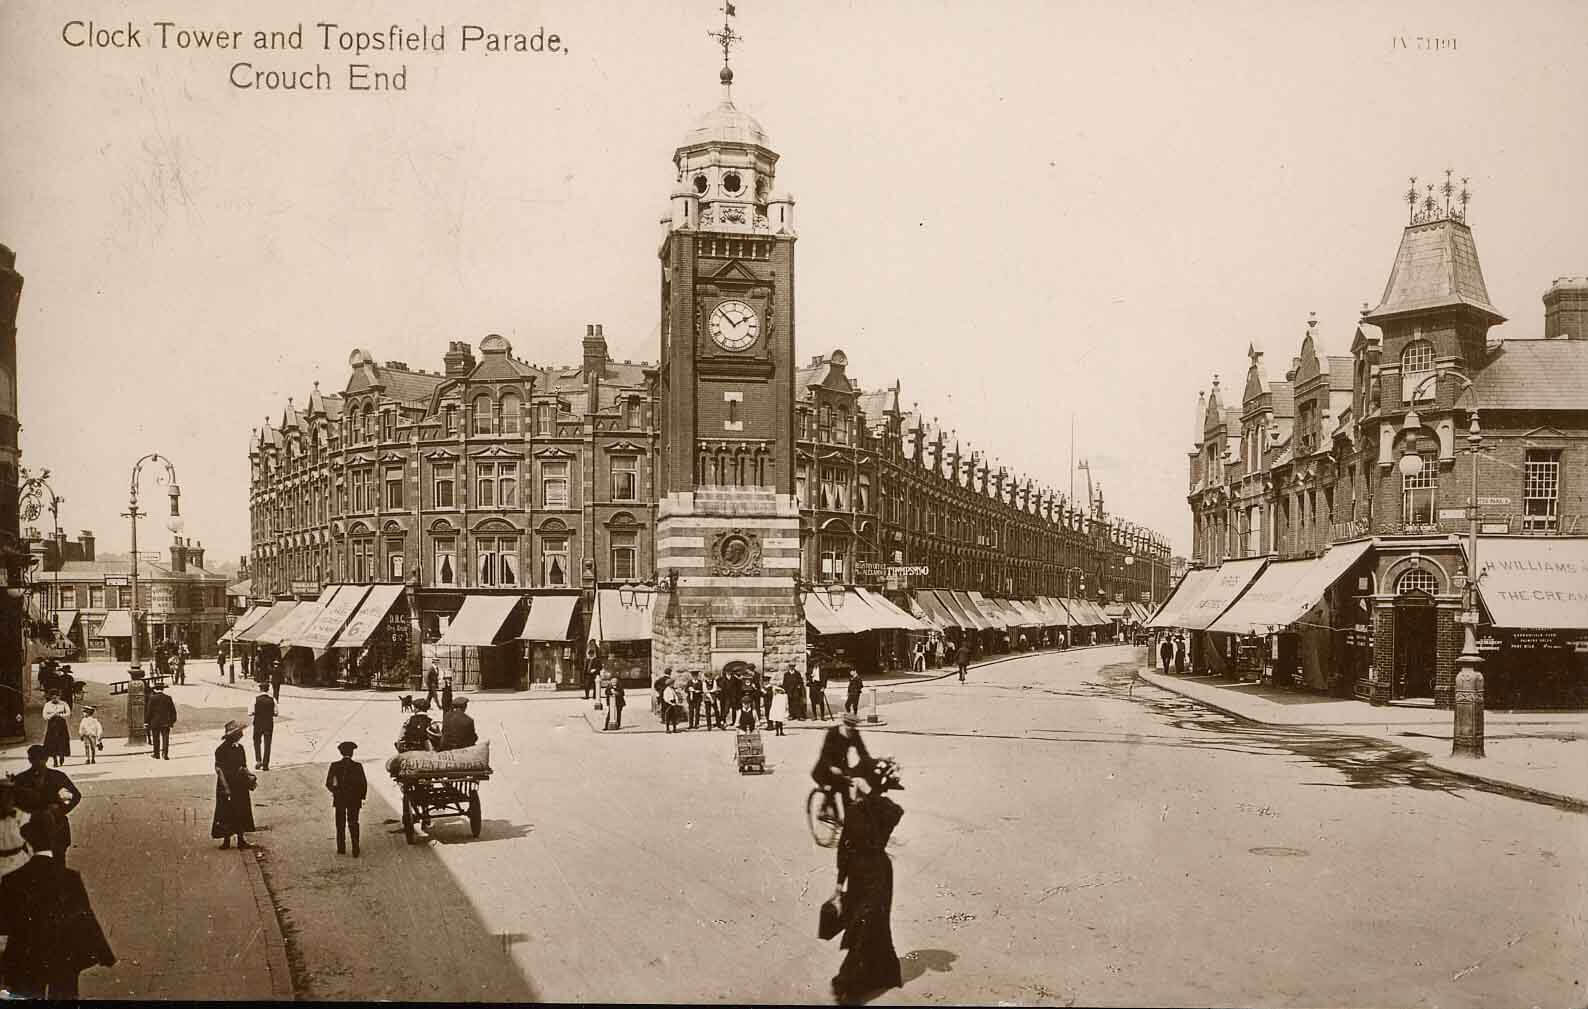 Clock Tower & Topsfield Parade,1895